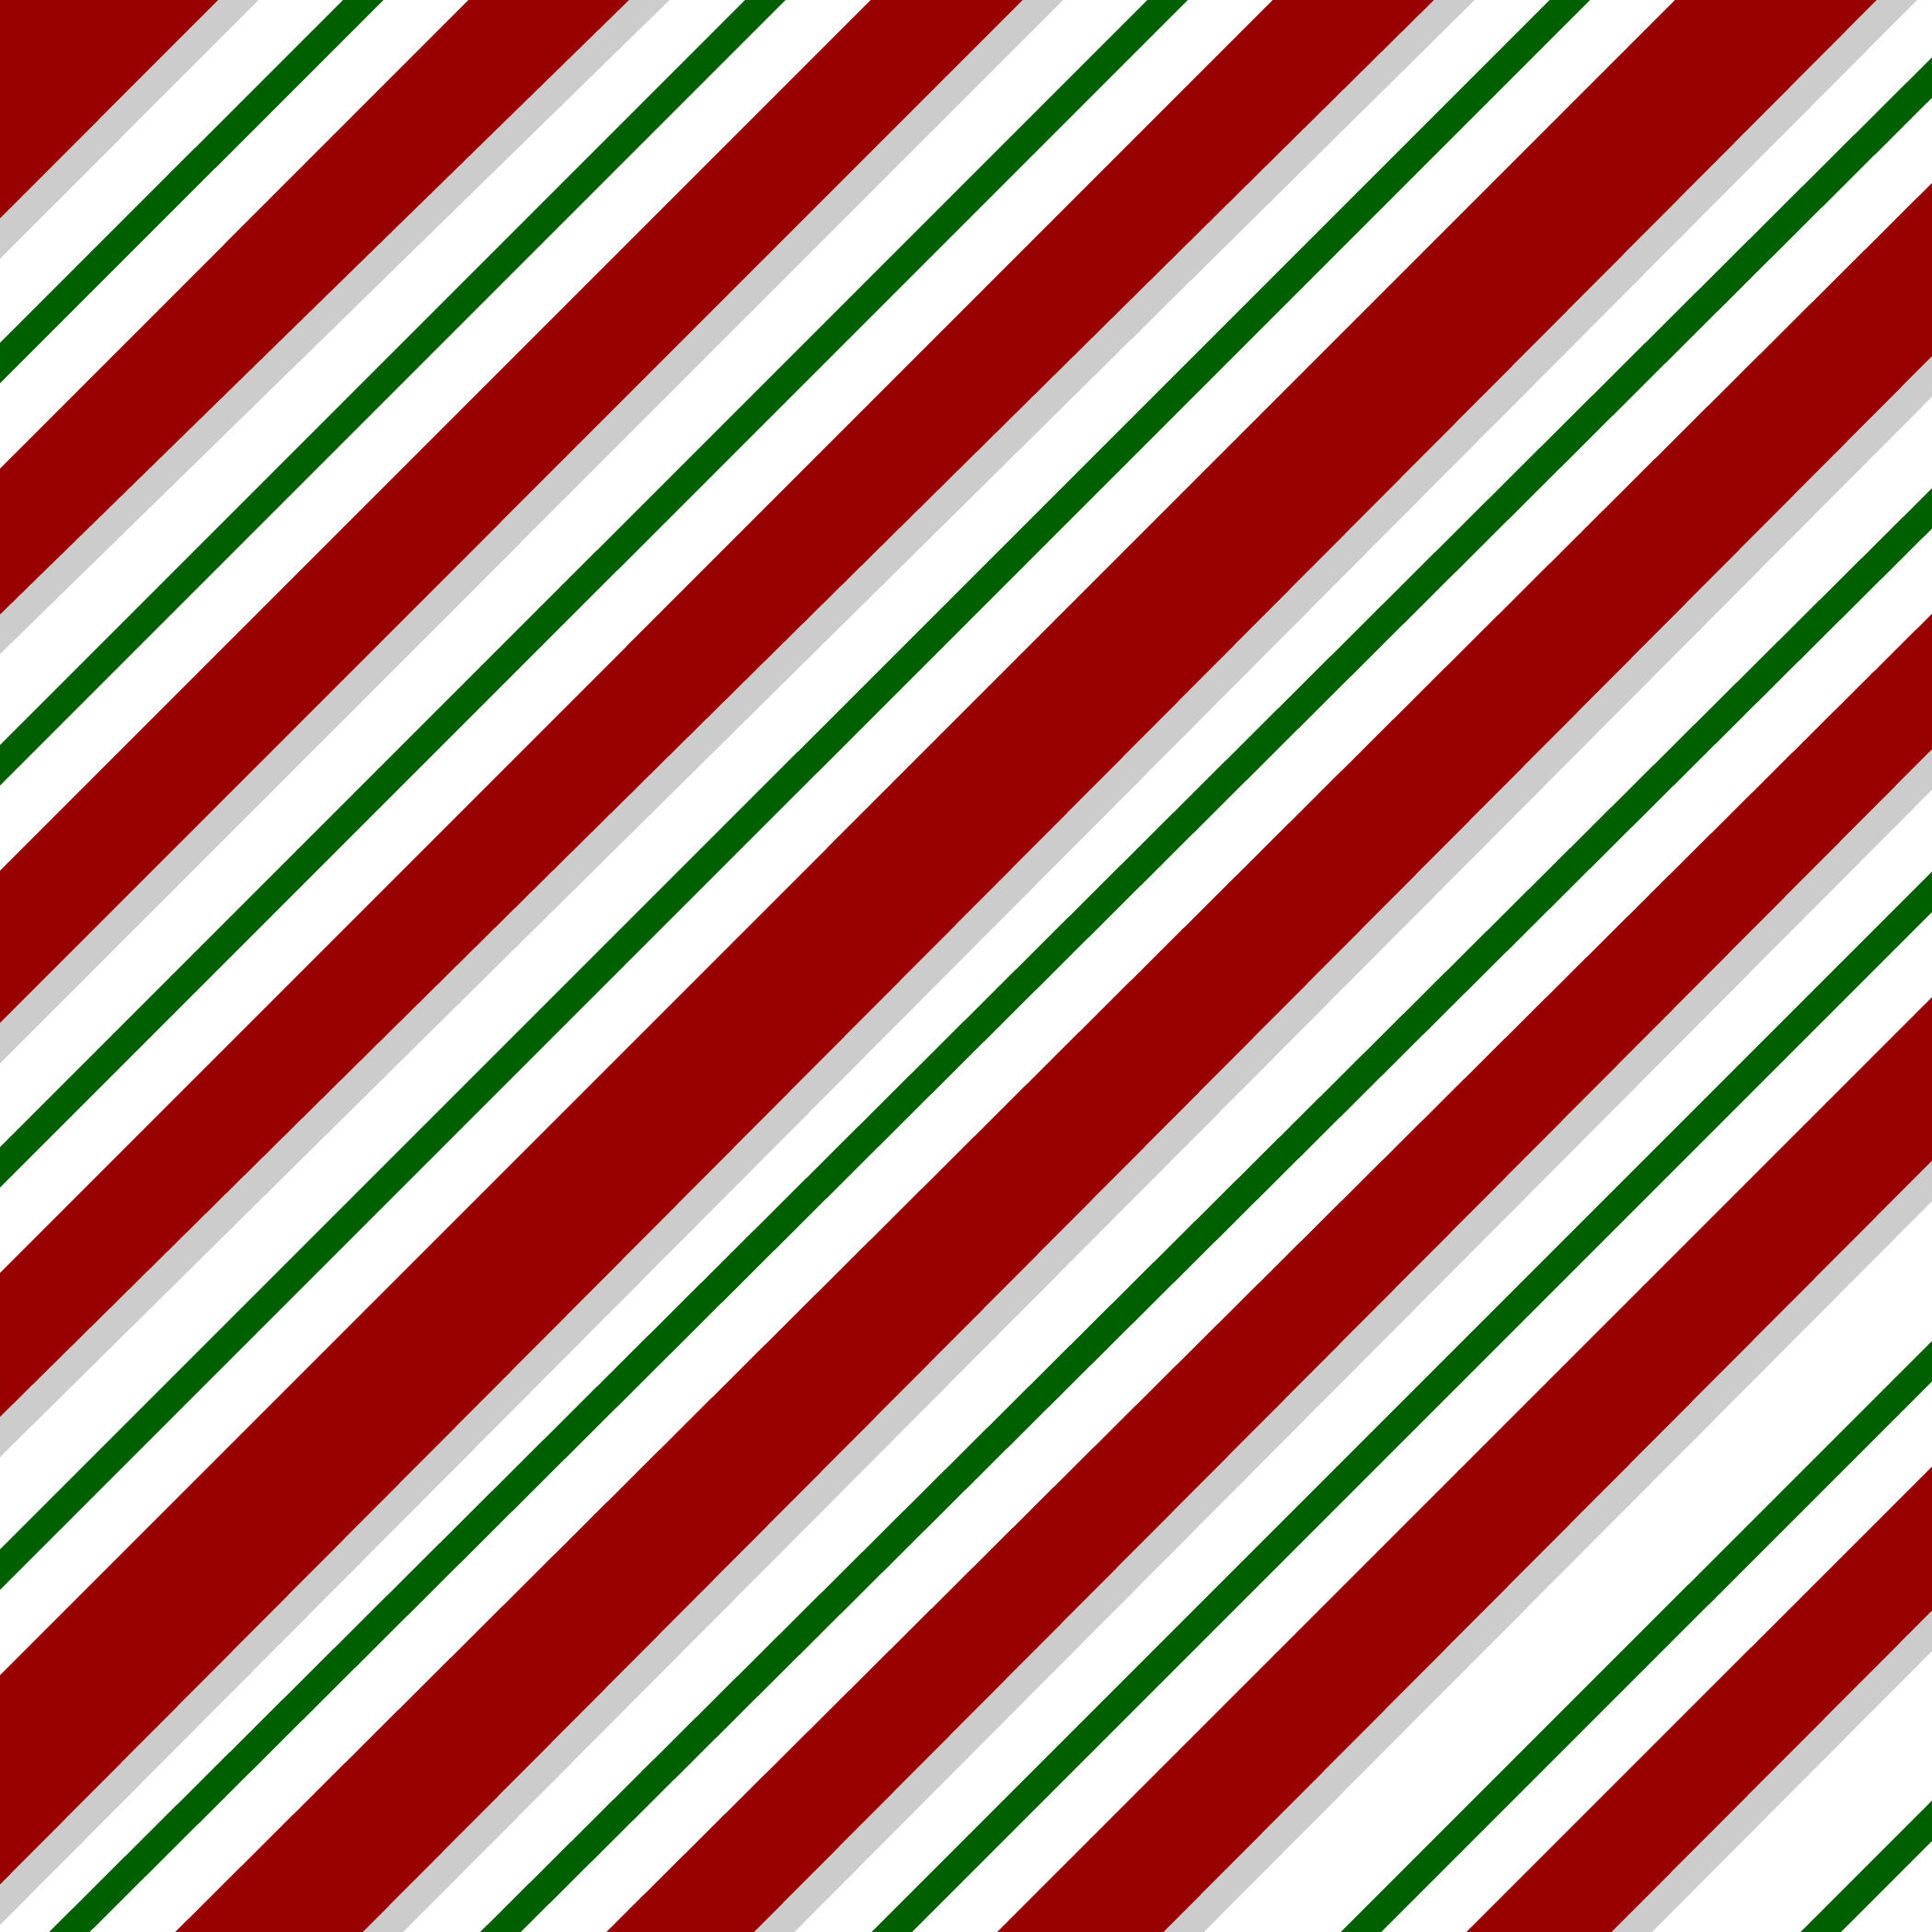 Side Striped Candy Cane Backgrounds HQ Free Download.